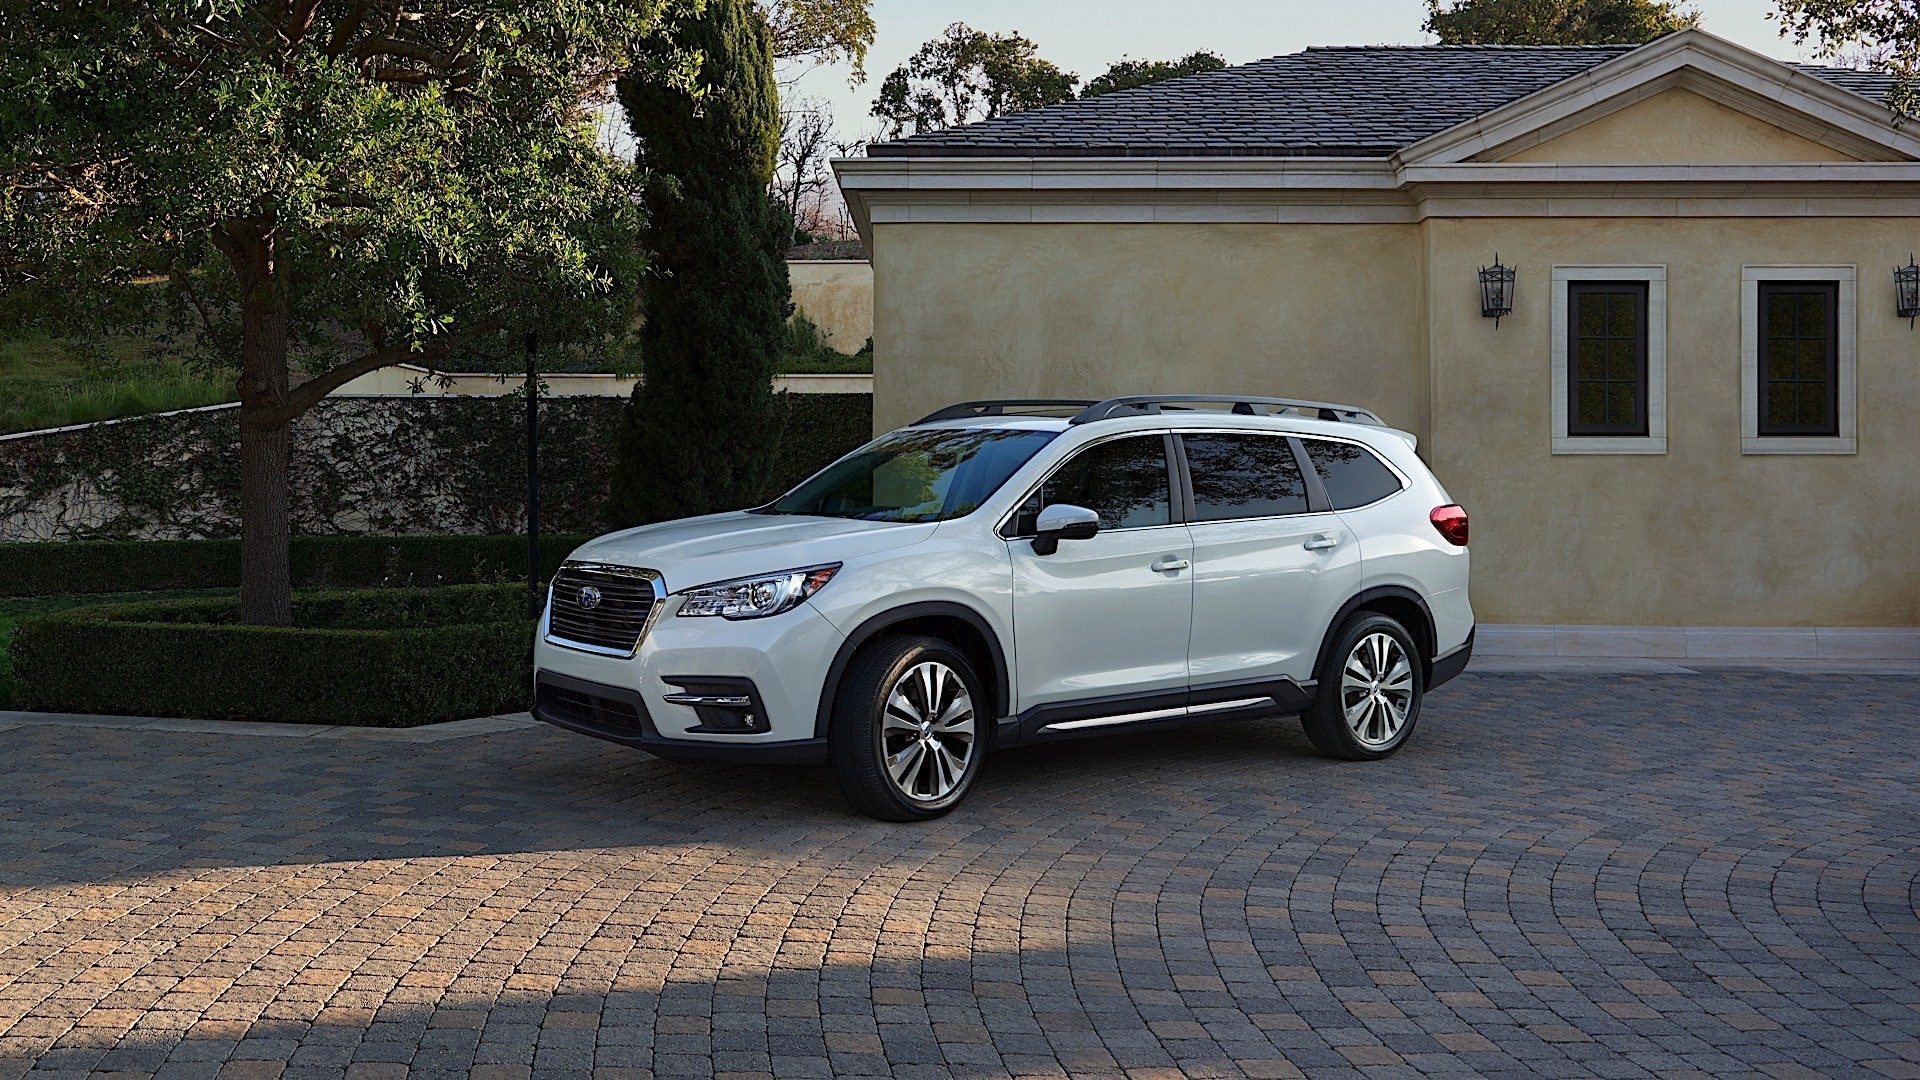 2020 Subaru Ascent Suv Priced From 31 995 Same As Last Year